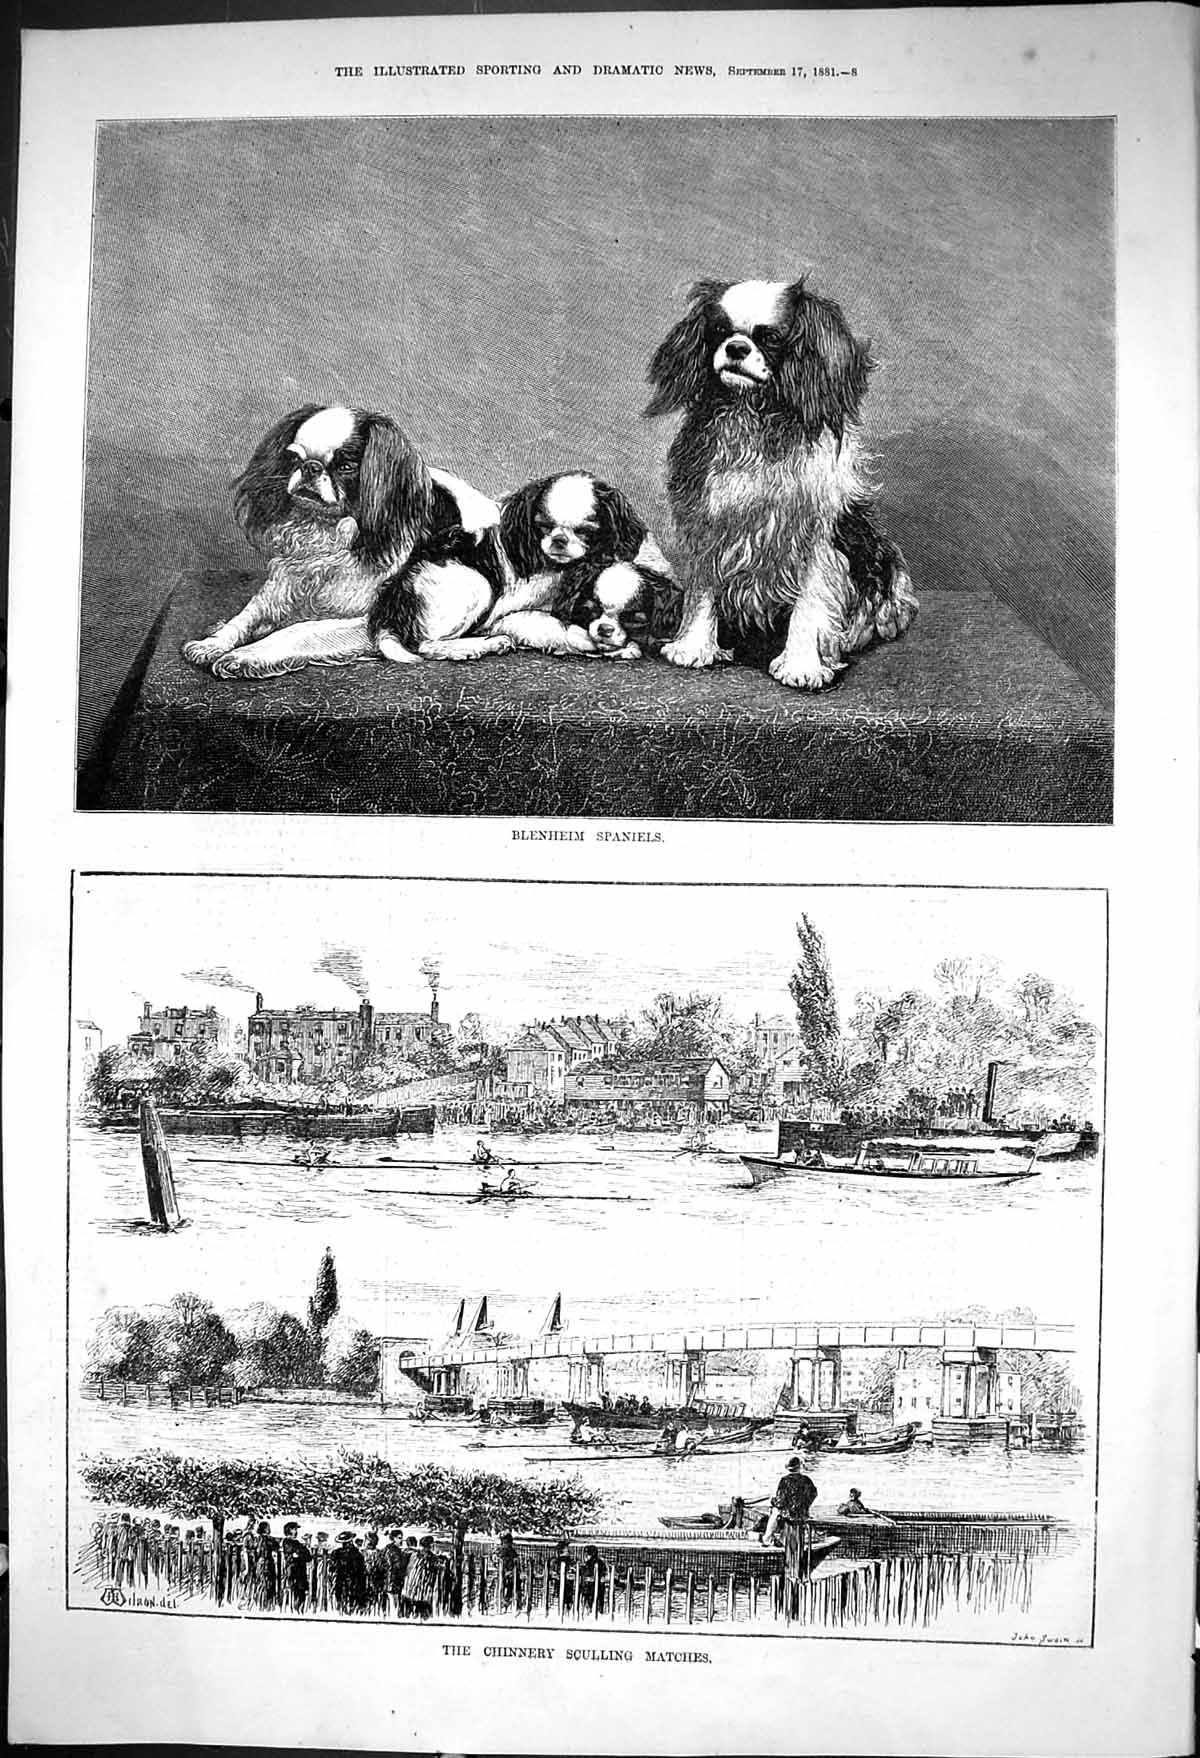 [Print 1881 Blenheim Spaniels Dogs Chinnery Sculling Matches Sport Boats 008J416 Old Original]